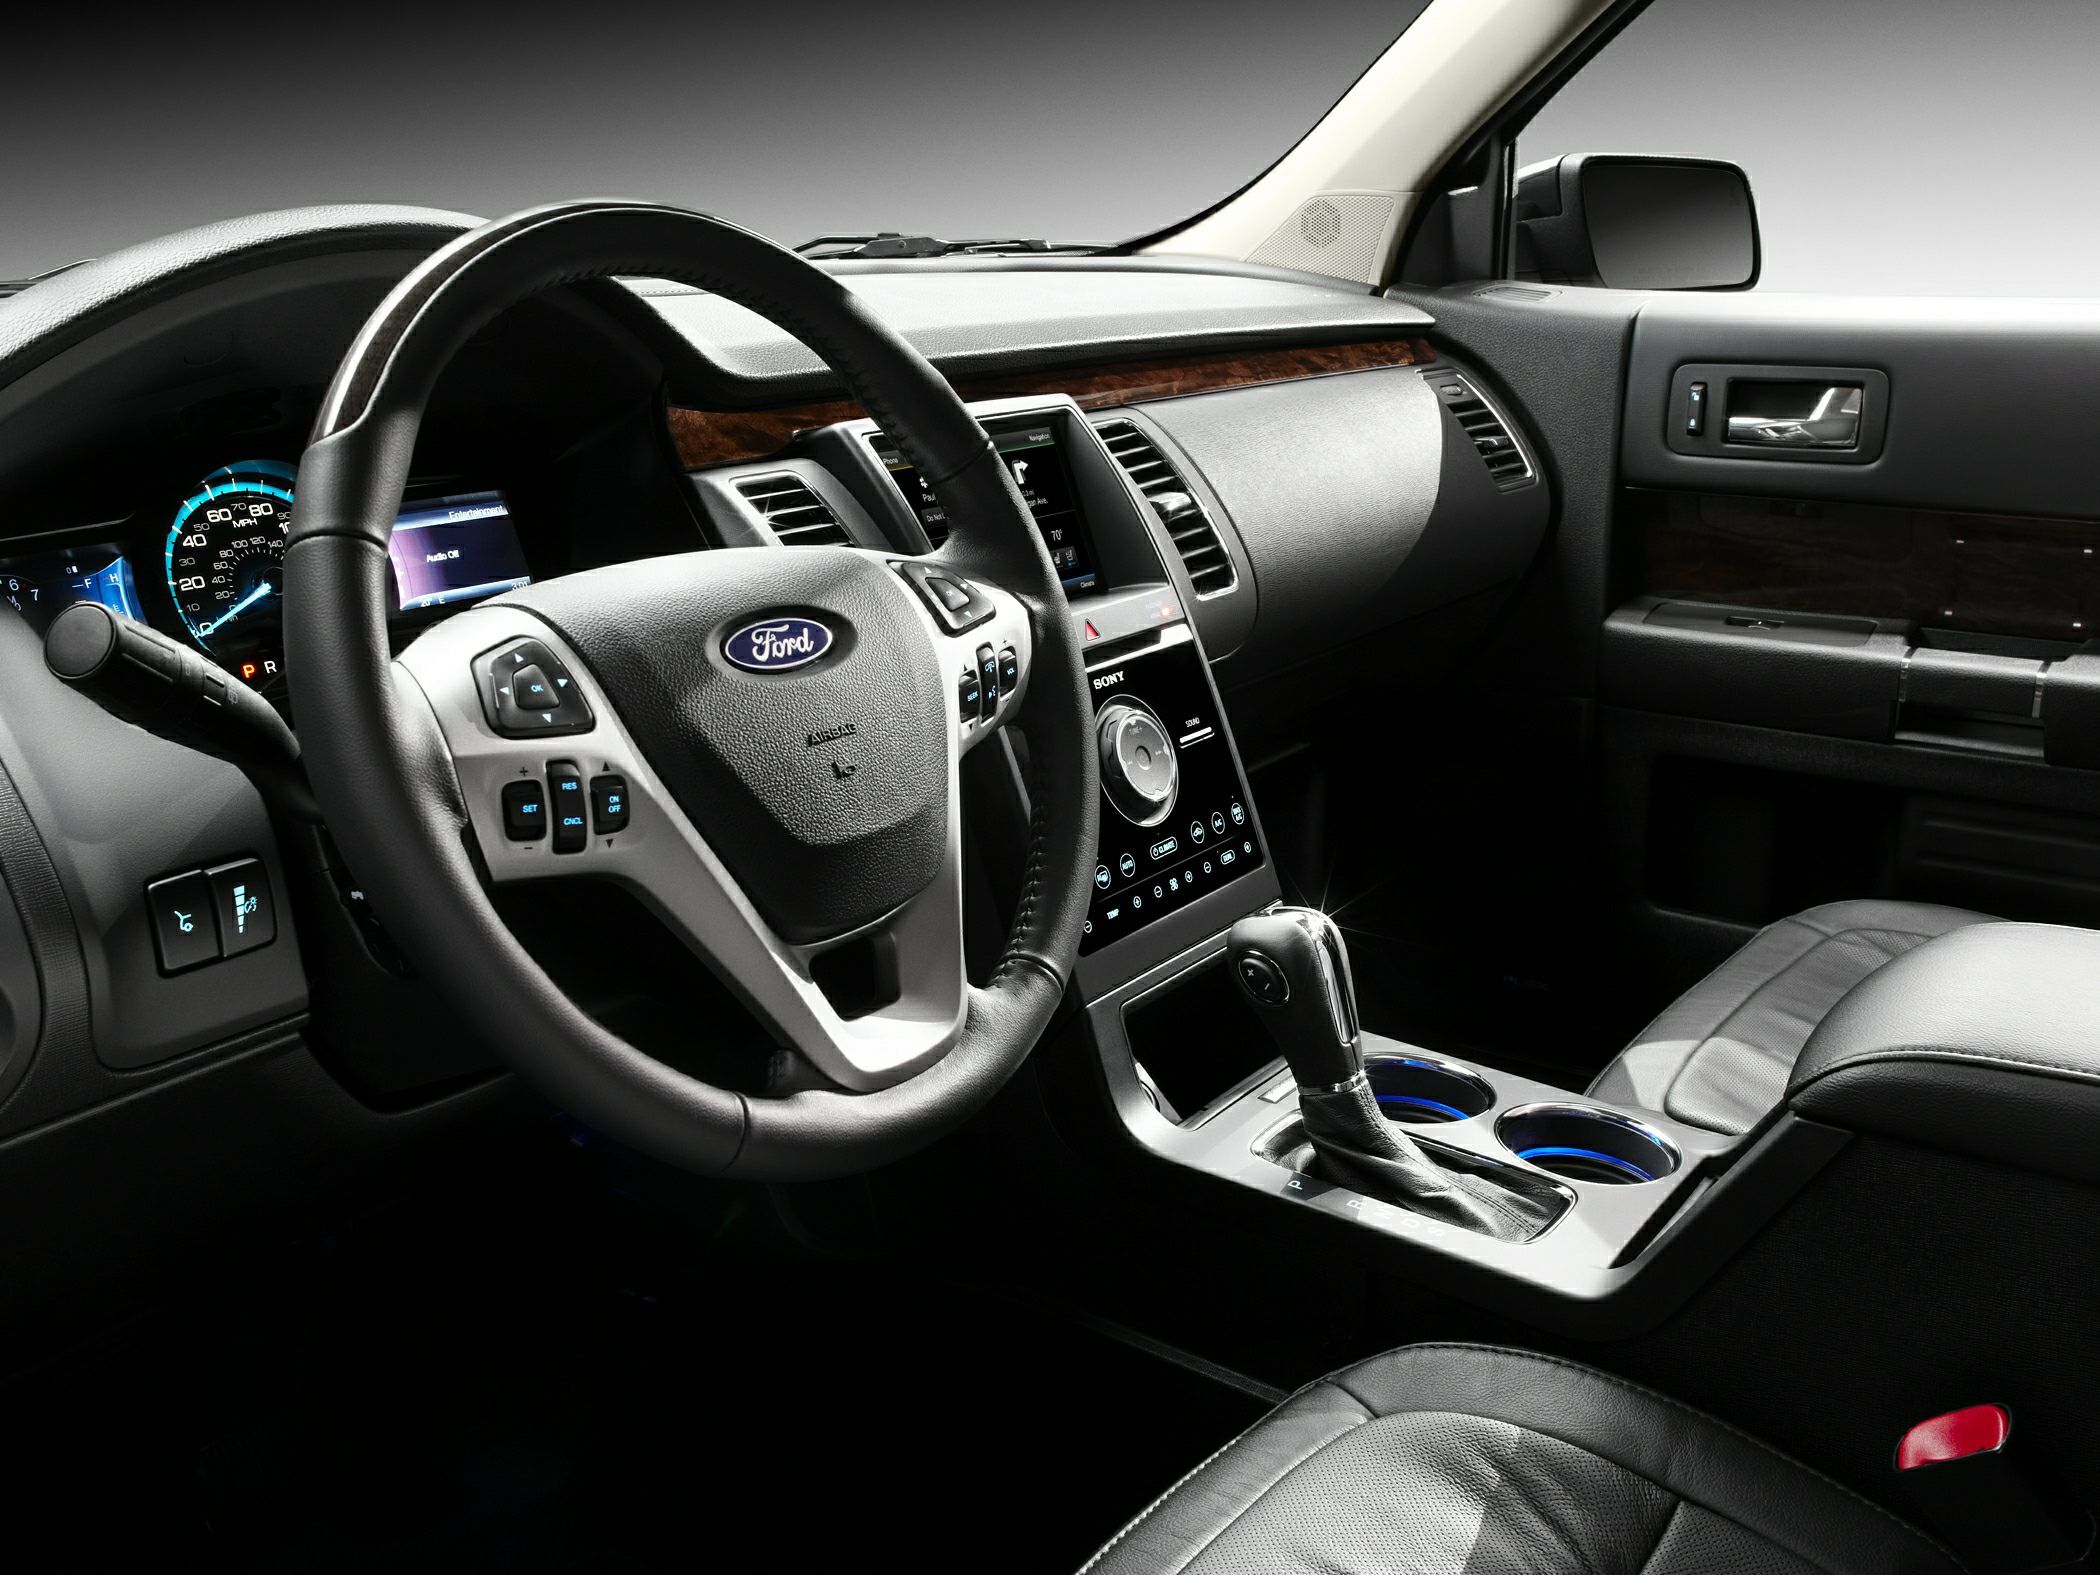 1000 images about cars on pinterest chevrolet equinox ford explorer and chevy 2012 ford explorer interior - 2013 Ford Explorer Cloth Interior